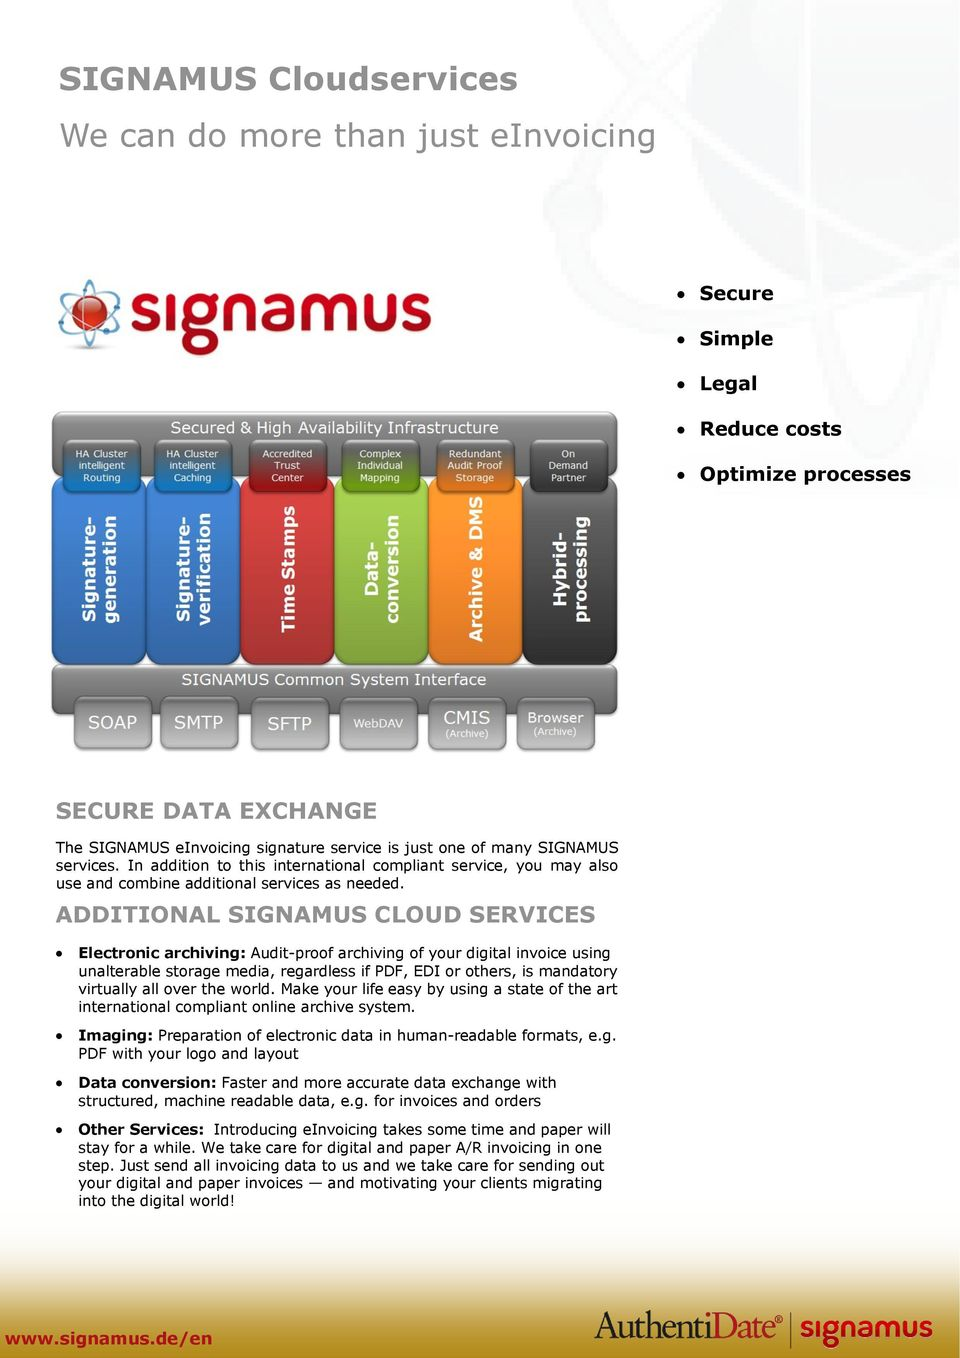 ADDITIONAL SIGNAMUS CLOUD SERVICES Electronic archiving: Audit-proof archiving of your digital invoice using unalterable storage media, regardless if PDF, EDI or others, is mandatory virtually all